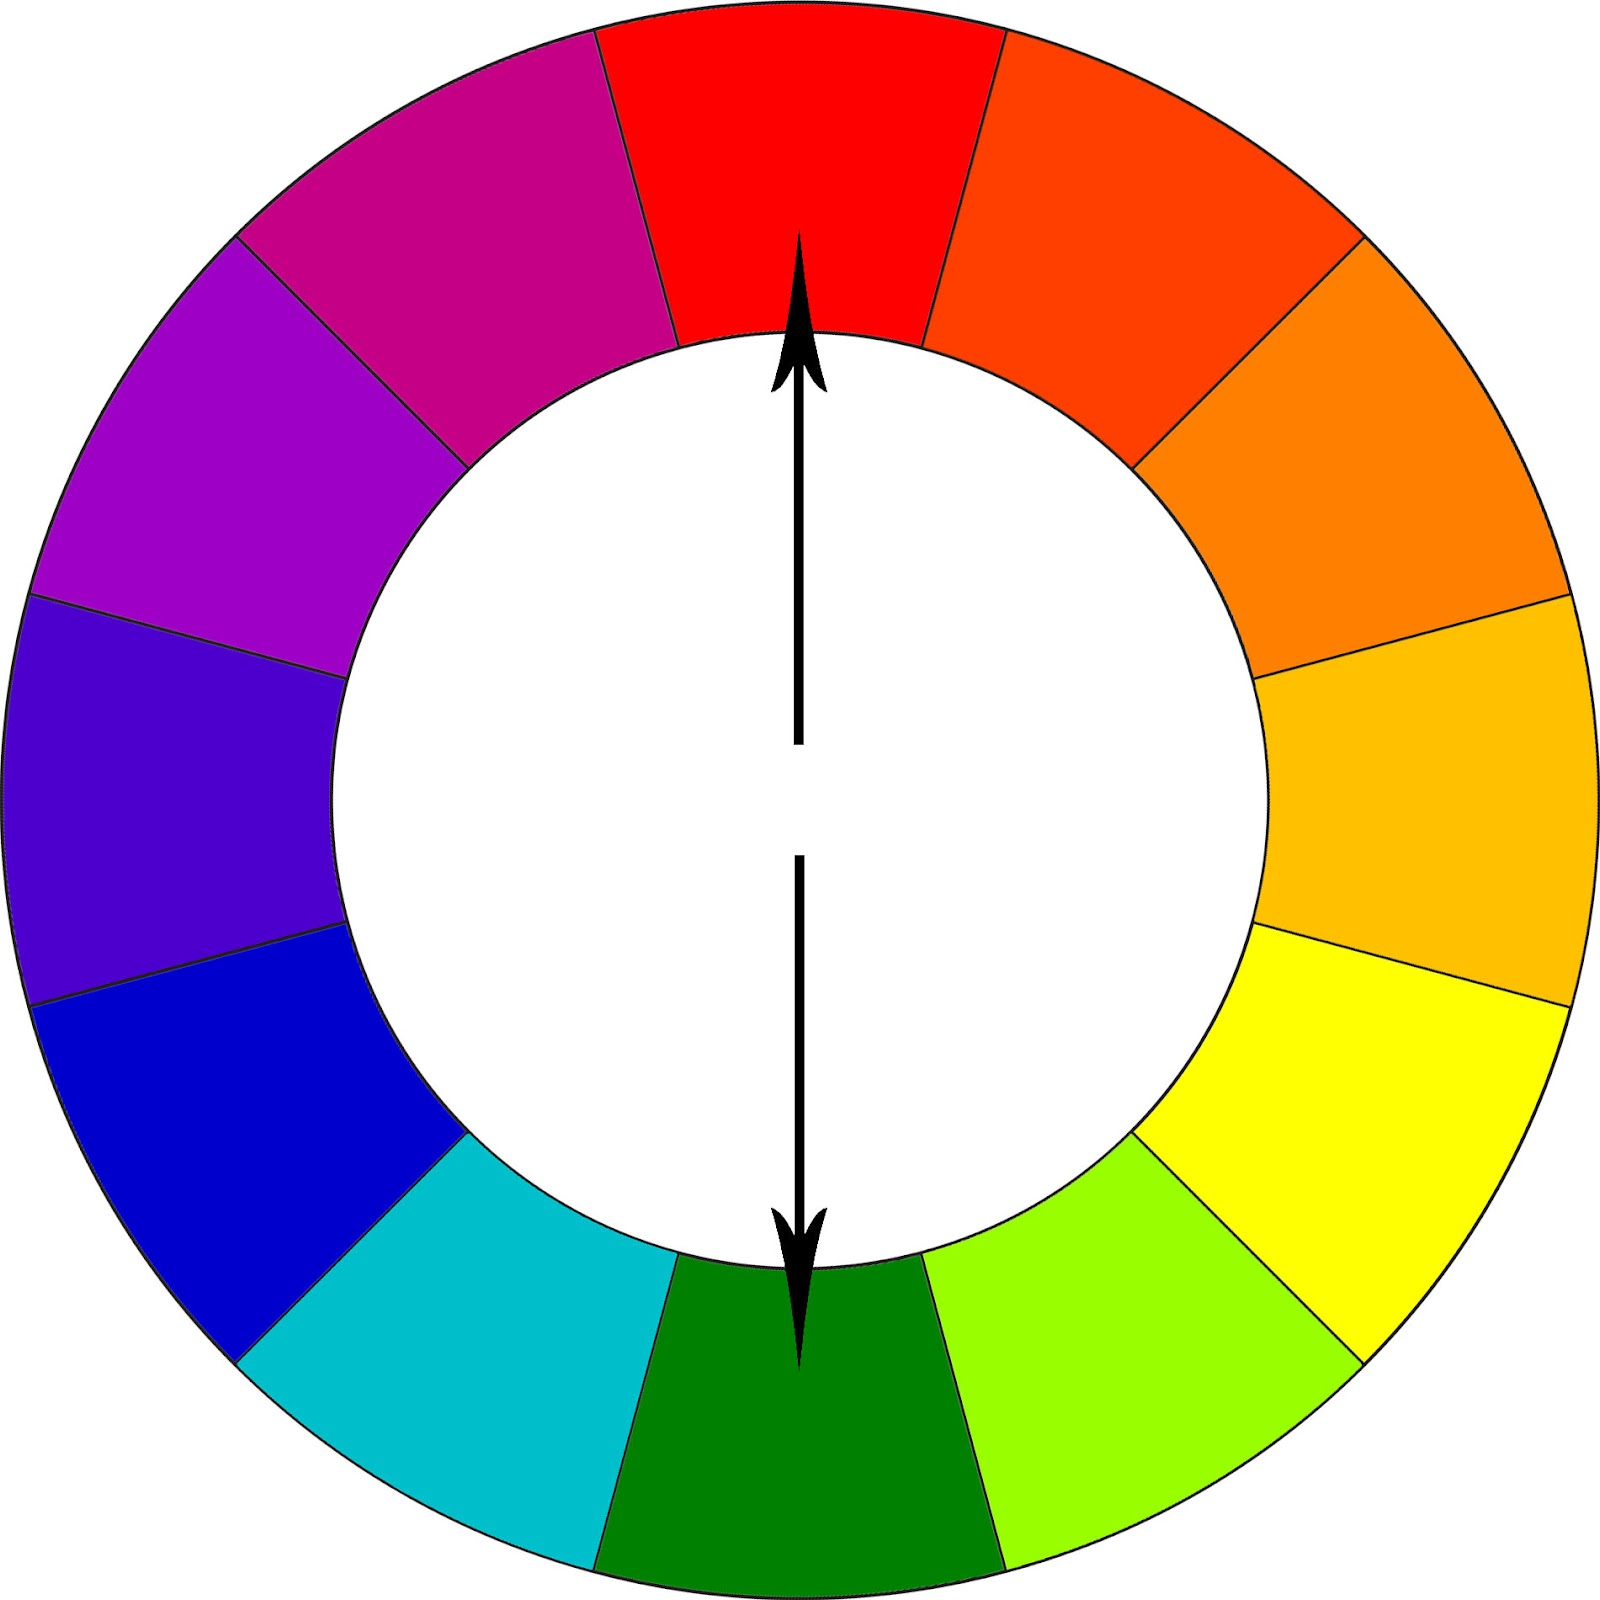 This Wheel Shows You How To Find A Colors Direct Compliment It Is Made Up Of Two Directly Across From One Another